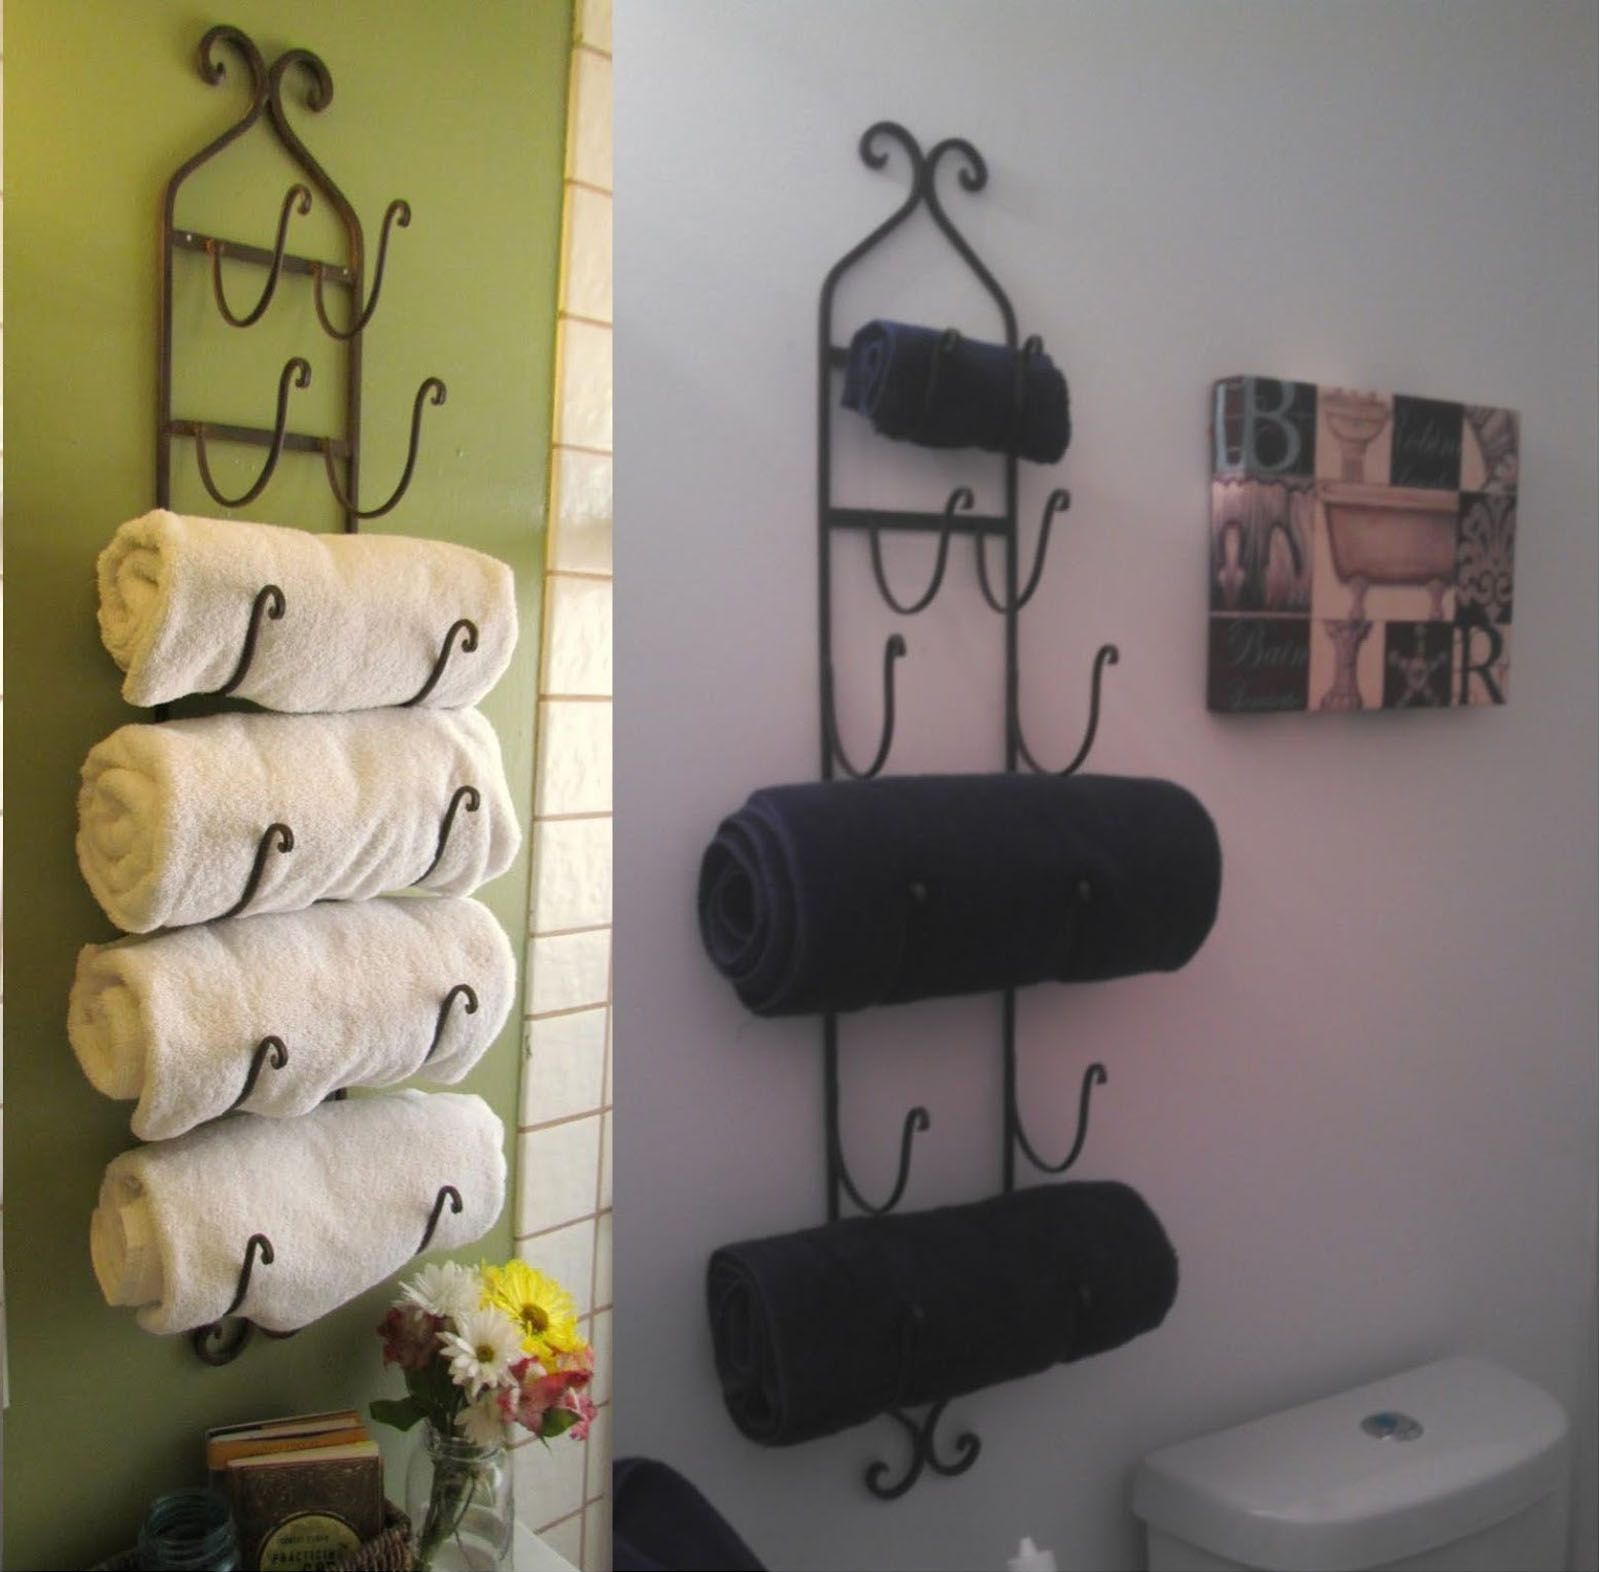 Towel Storage Ideas For A Small Bathroom Home Decorating Ideas - Towel rails for small bathrooms for small bathroom ideas